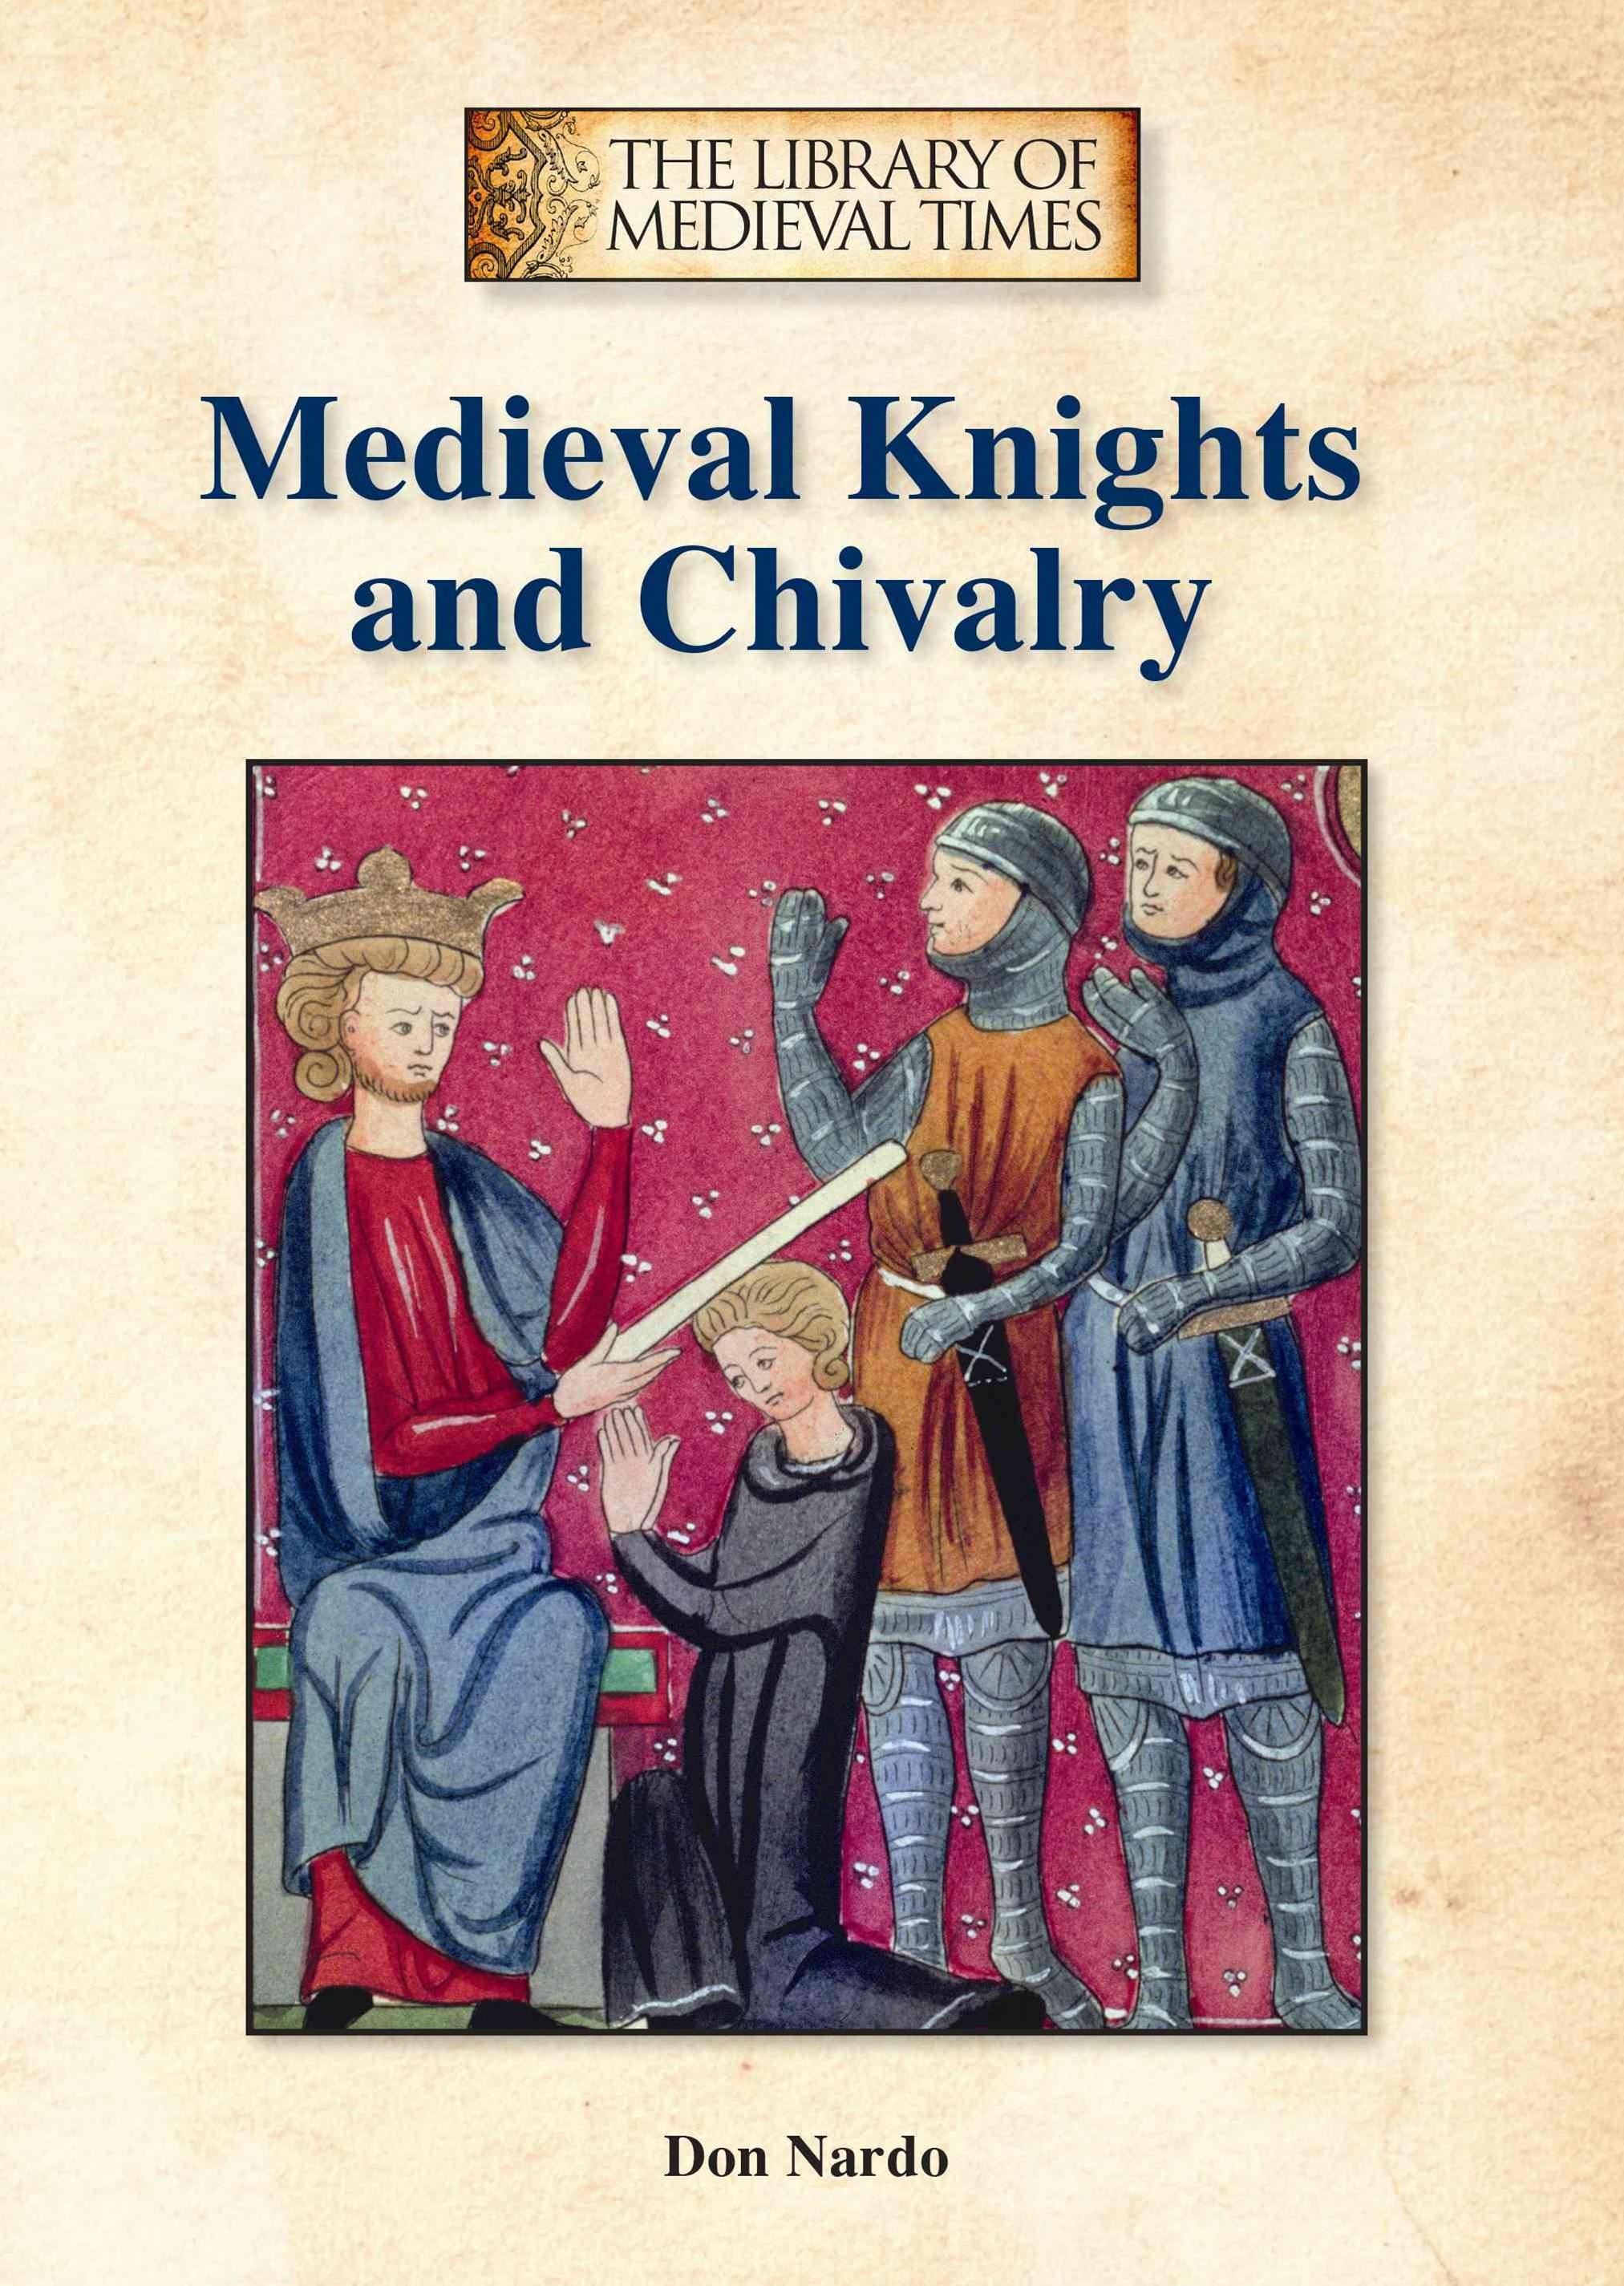 Medieval Knights and Chivalry